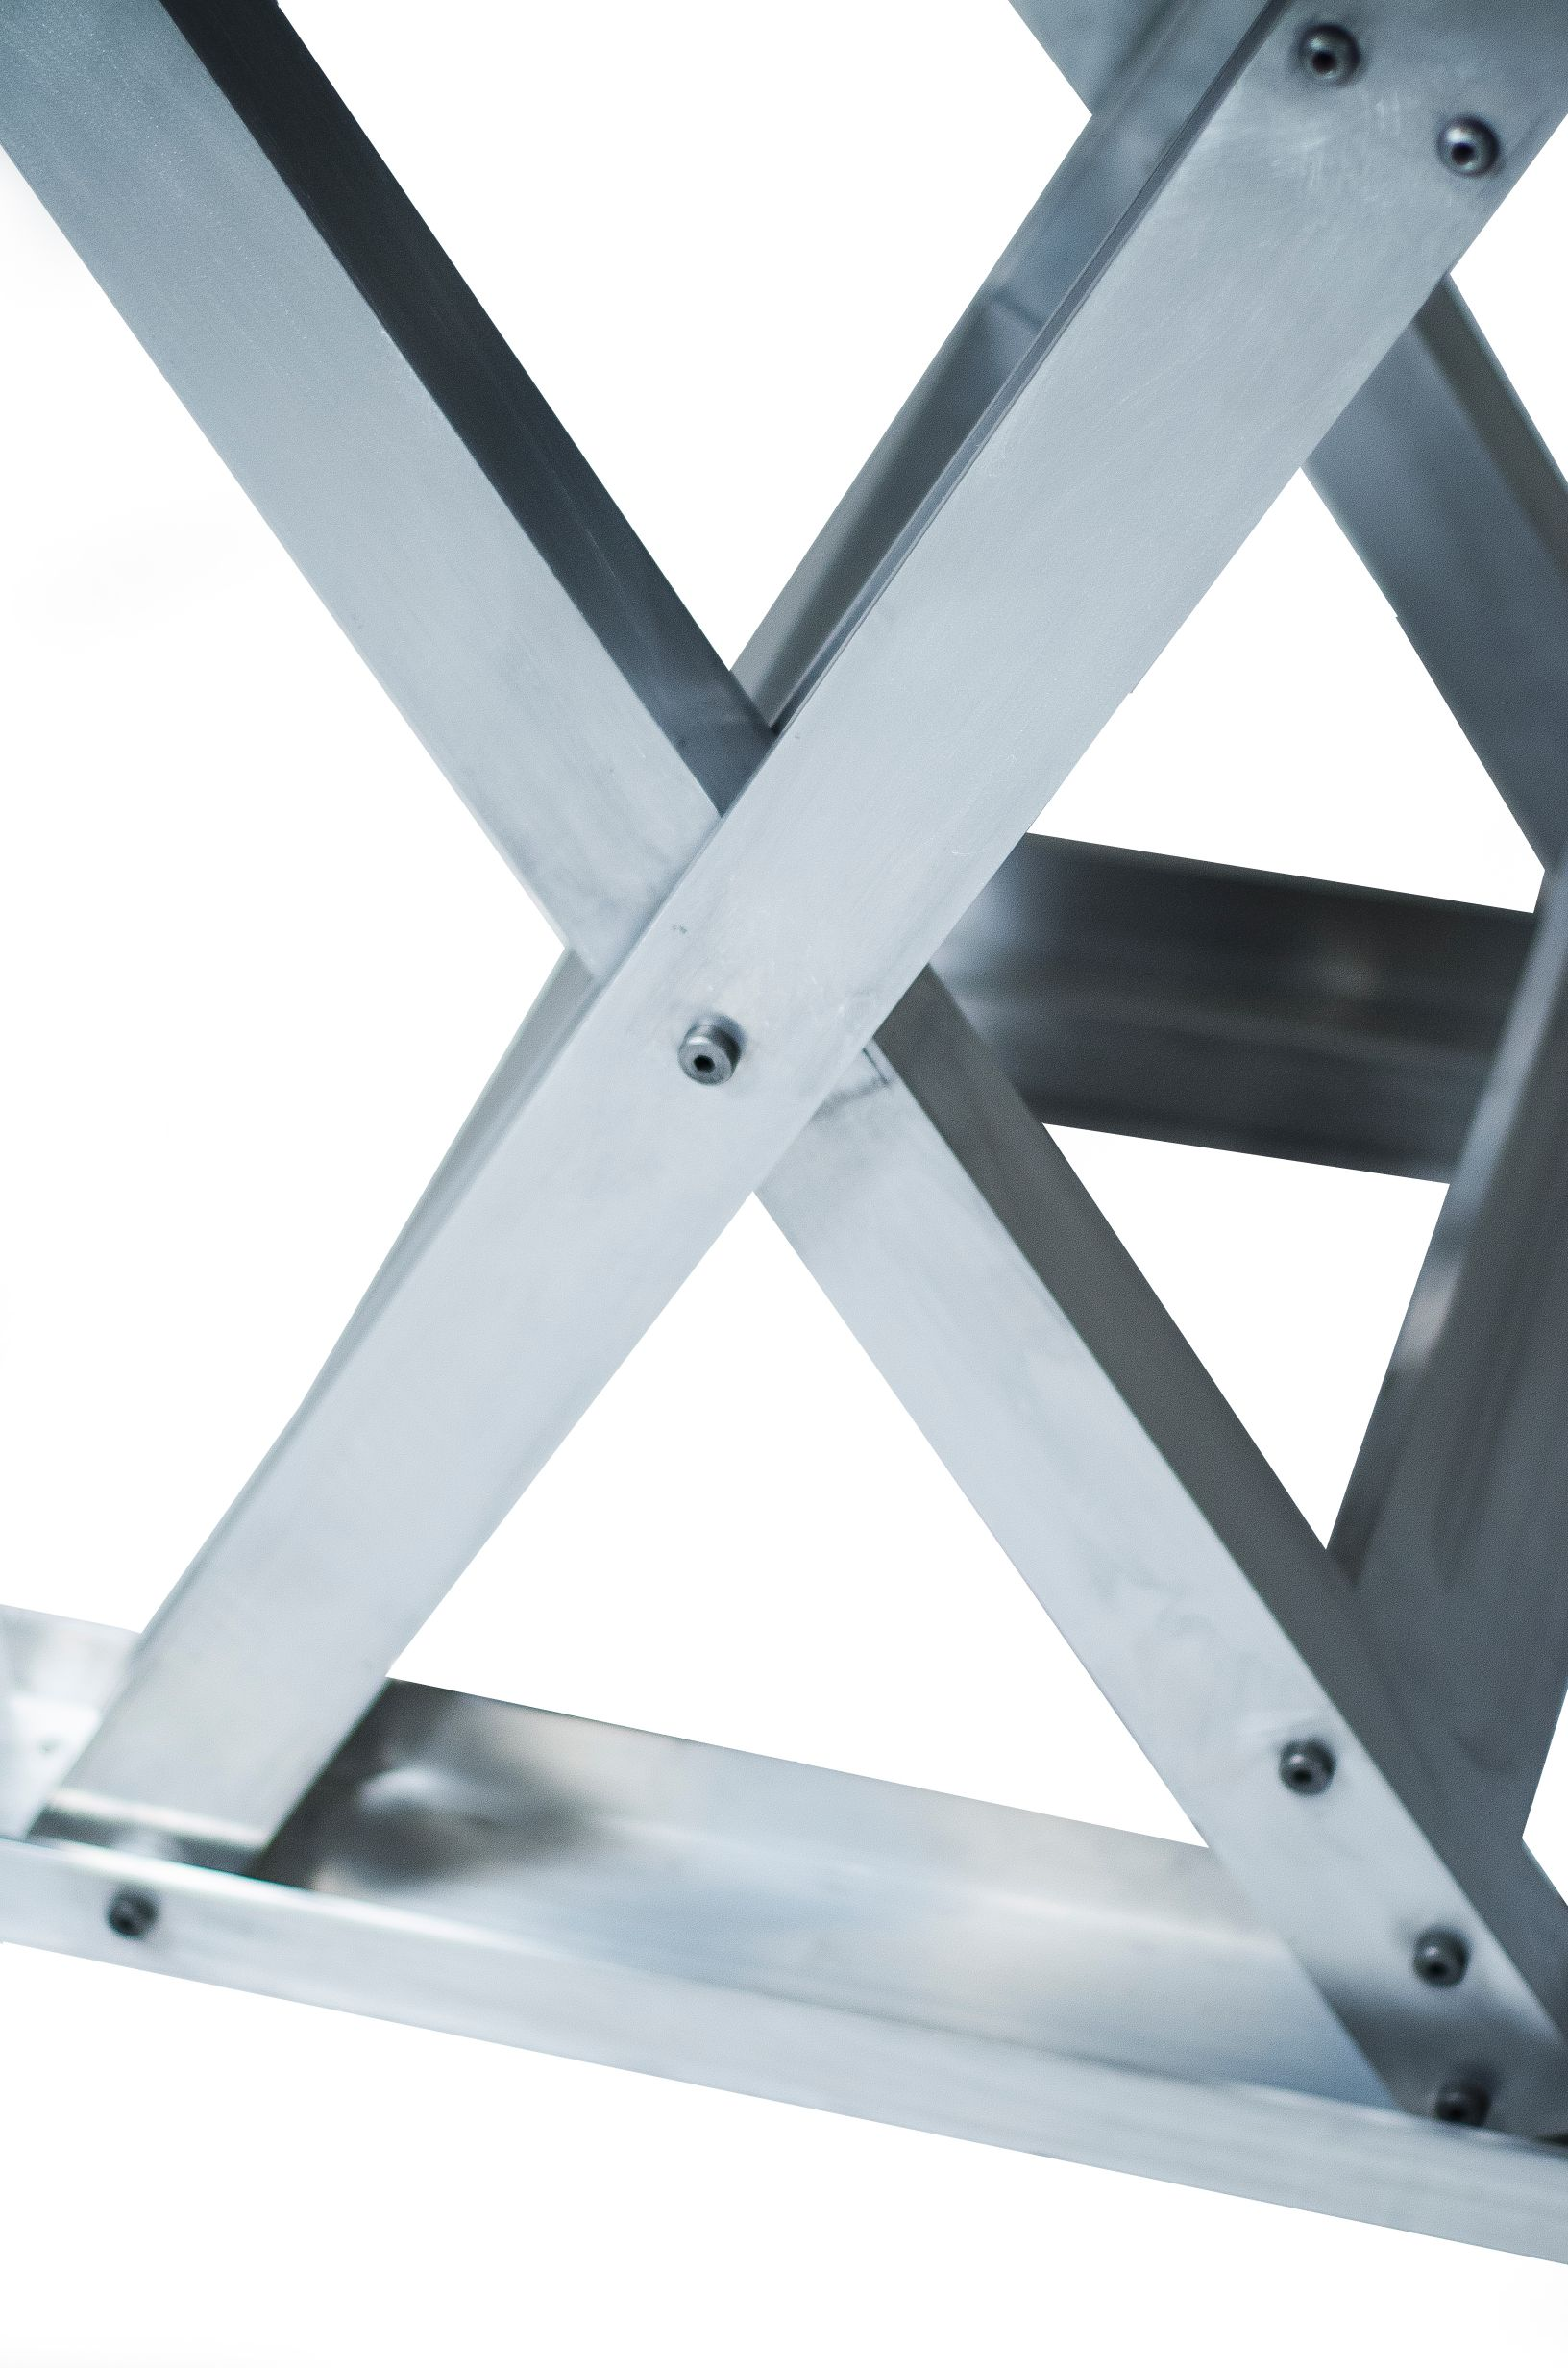 Uplift Stage Scissor Lift